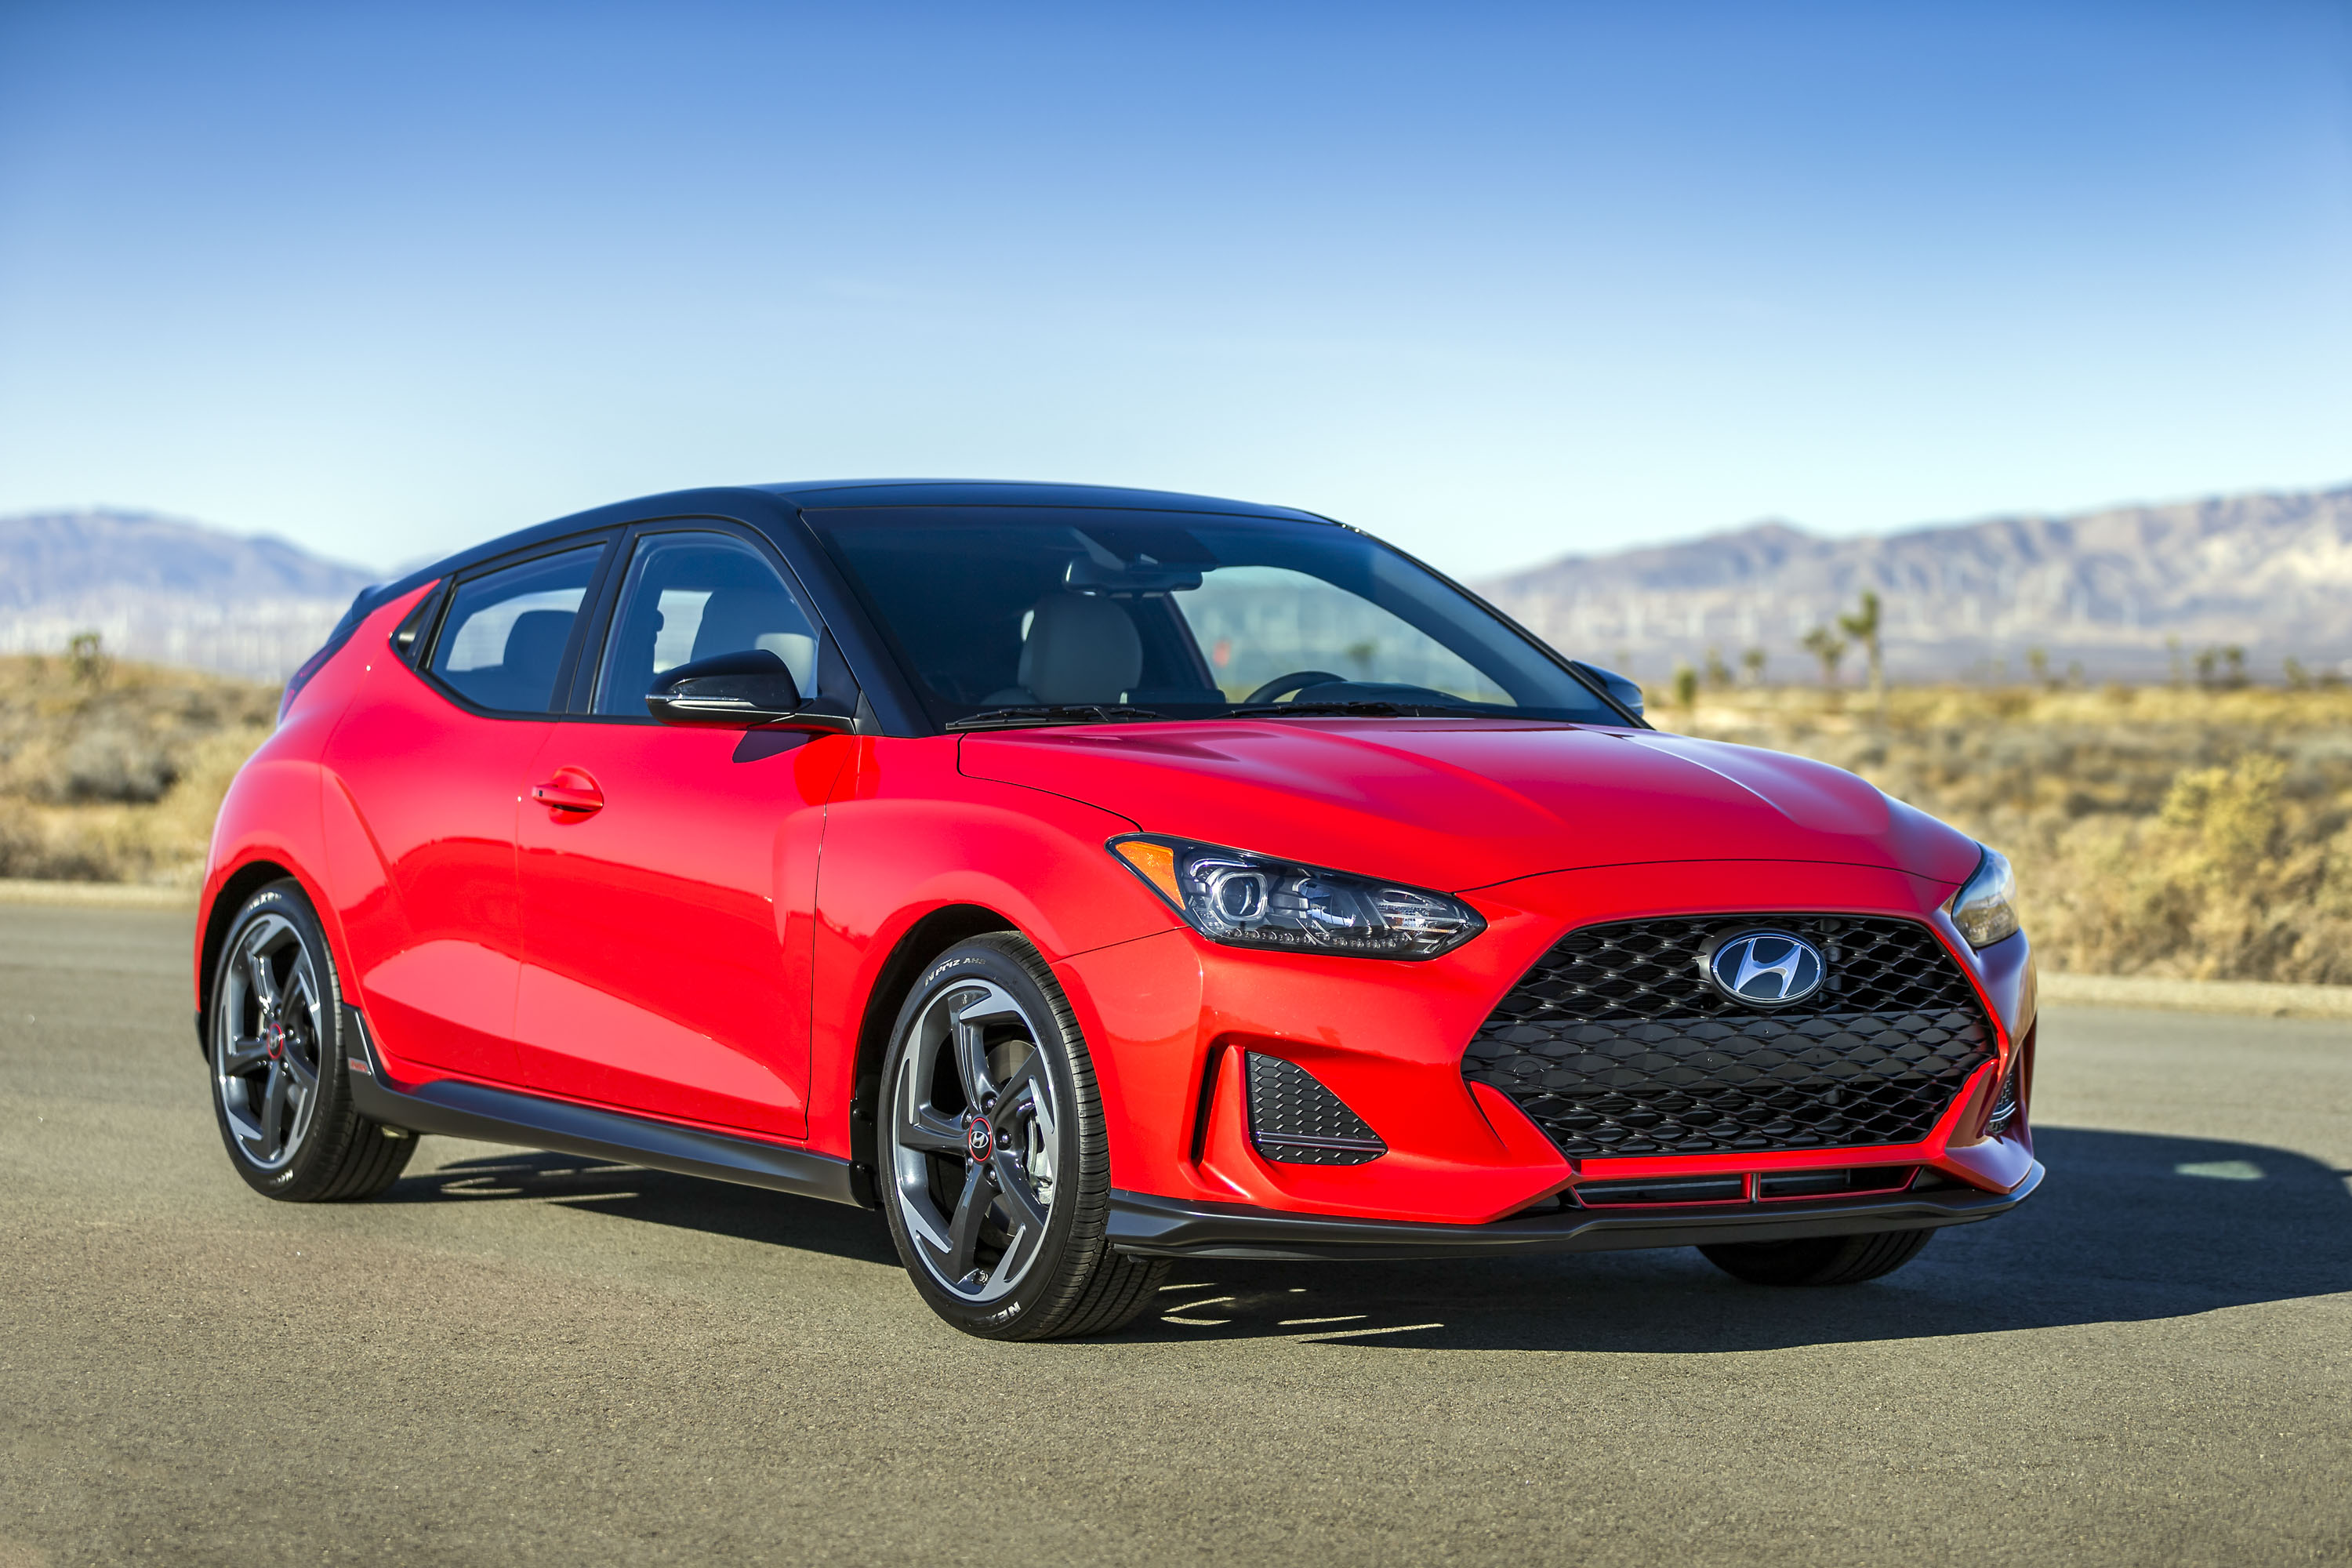 59 The Best 2020 Hyundai Veloster Exterior